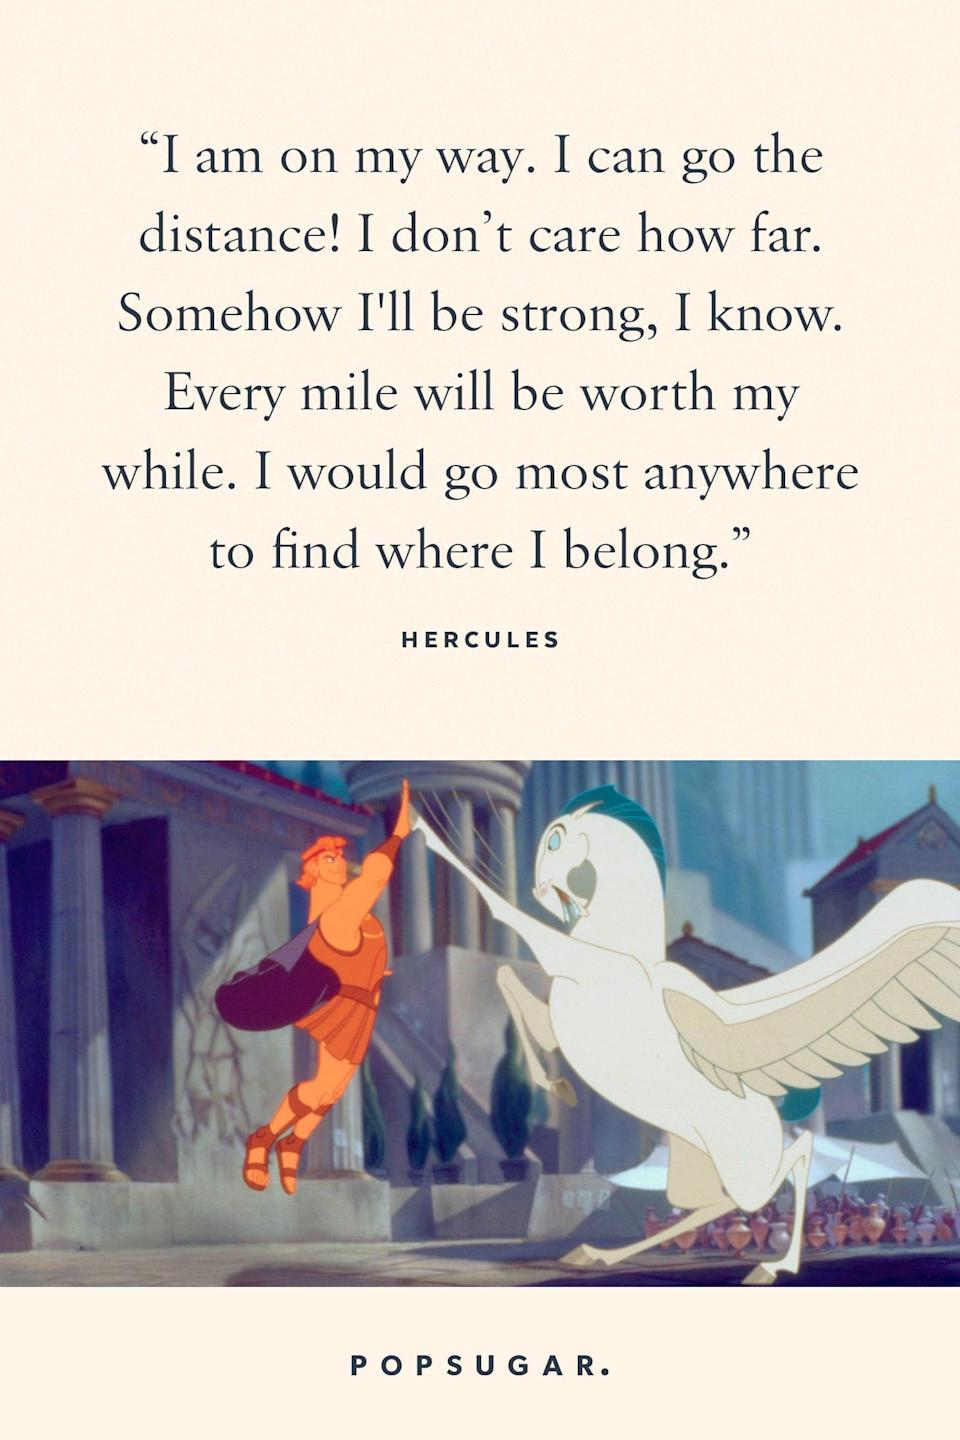 "<p>""I am on my way. I can go the distance! I don't care how far. Somehow I'll be strong, I know. Every mile will be worth my while. I would go most anywhere to find where I belong."" - Hercules, <b>Hercules</b></p>"